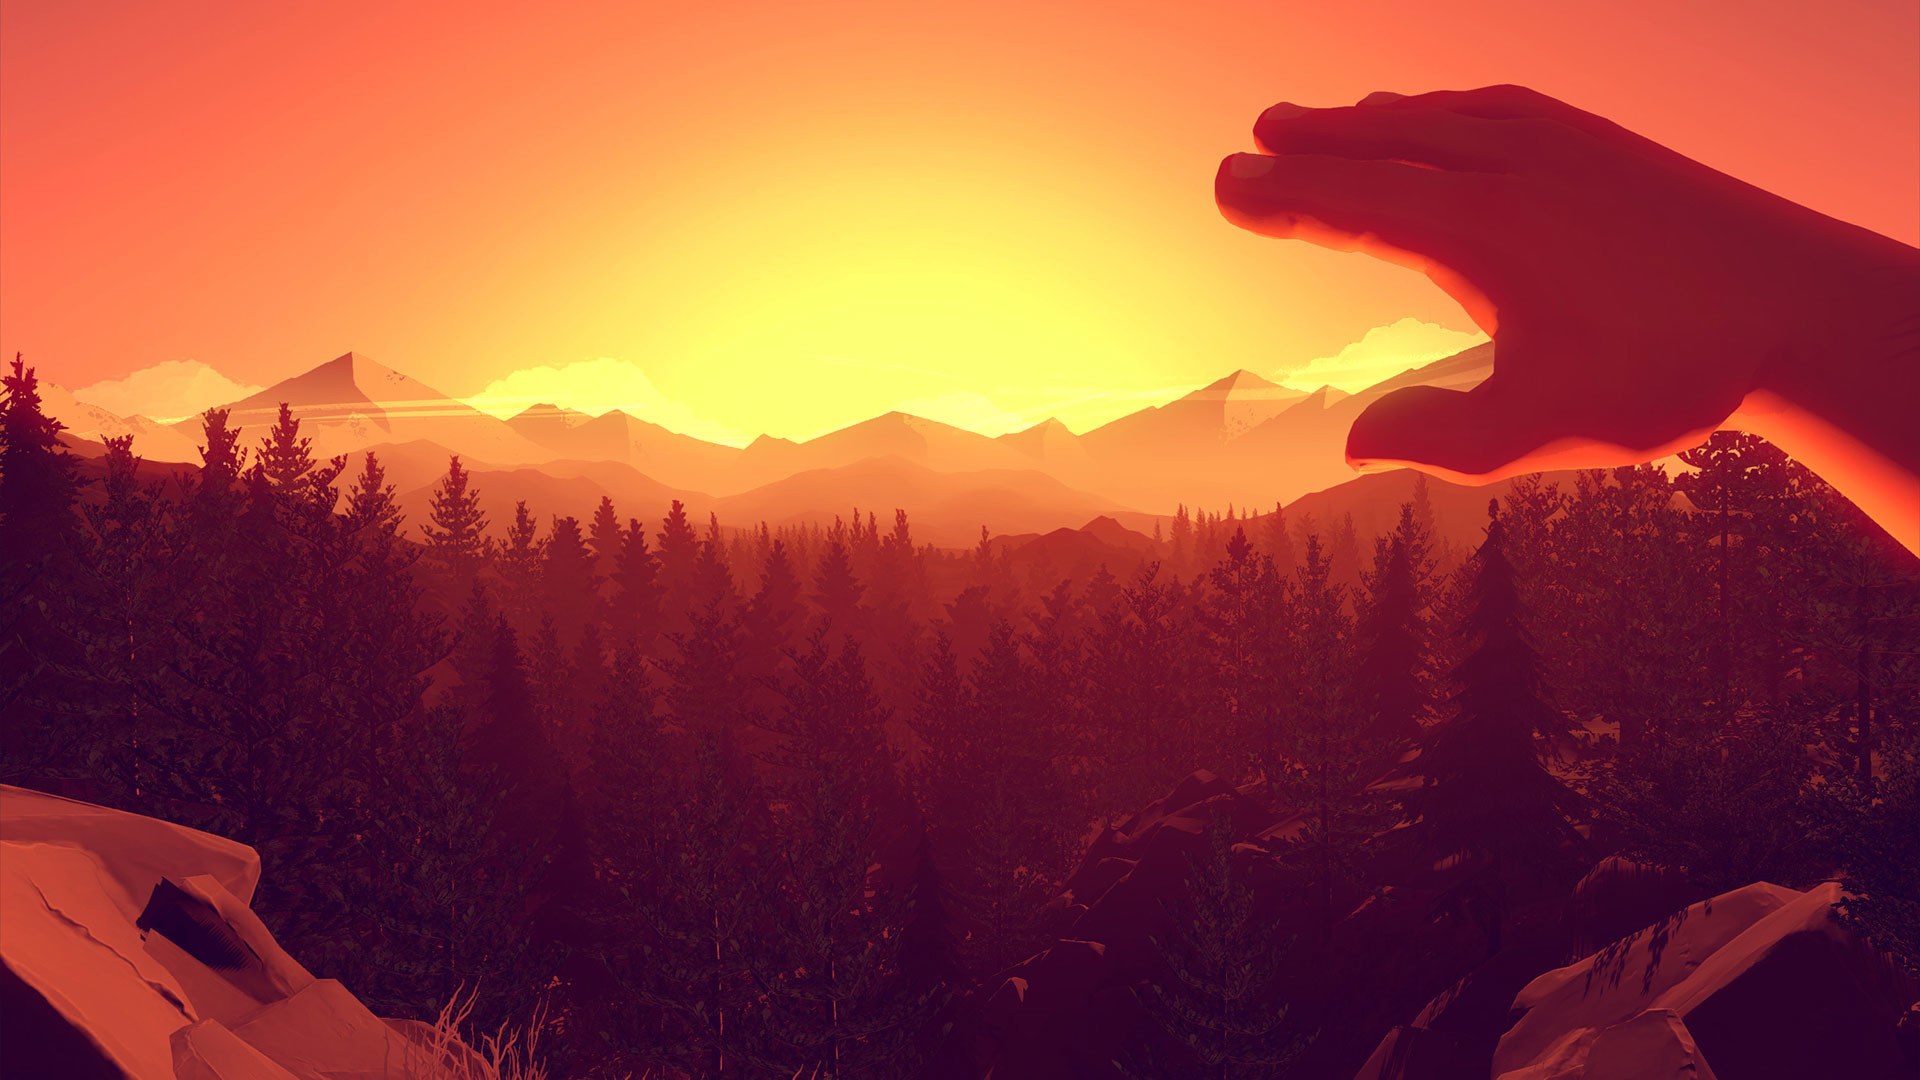 Res: 1920x1080, Firewatch 4K Wallpaper | Firewatch 1080p Wallpaper ...